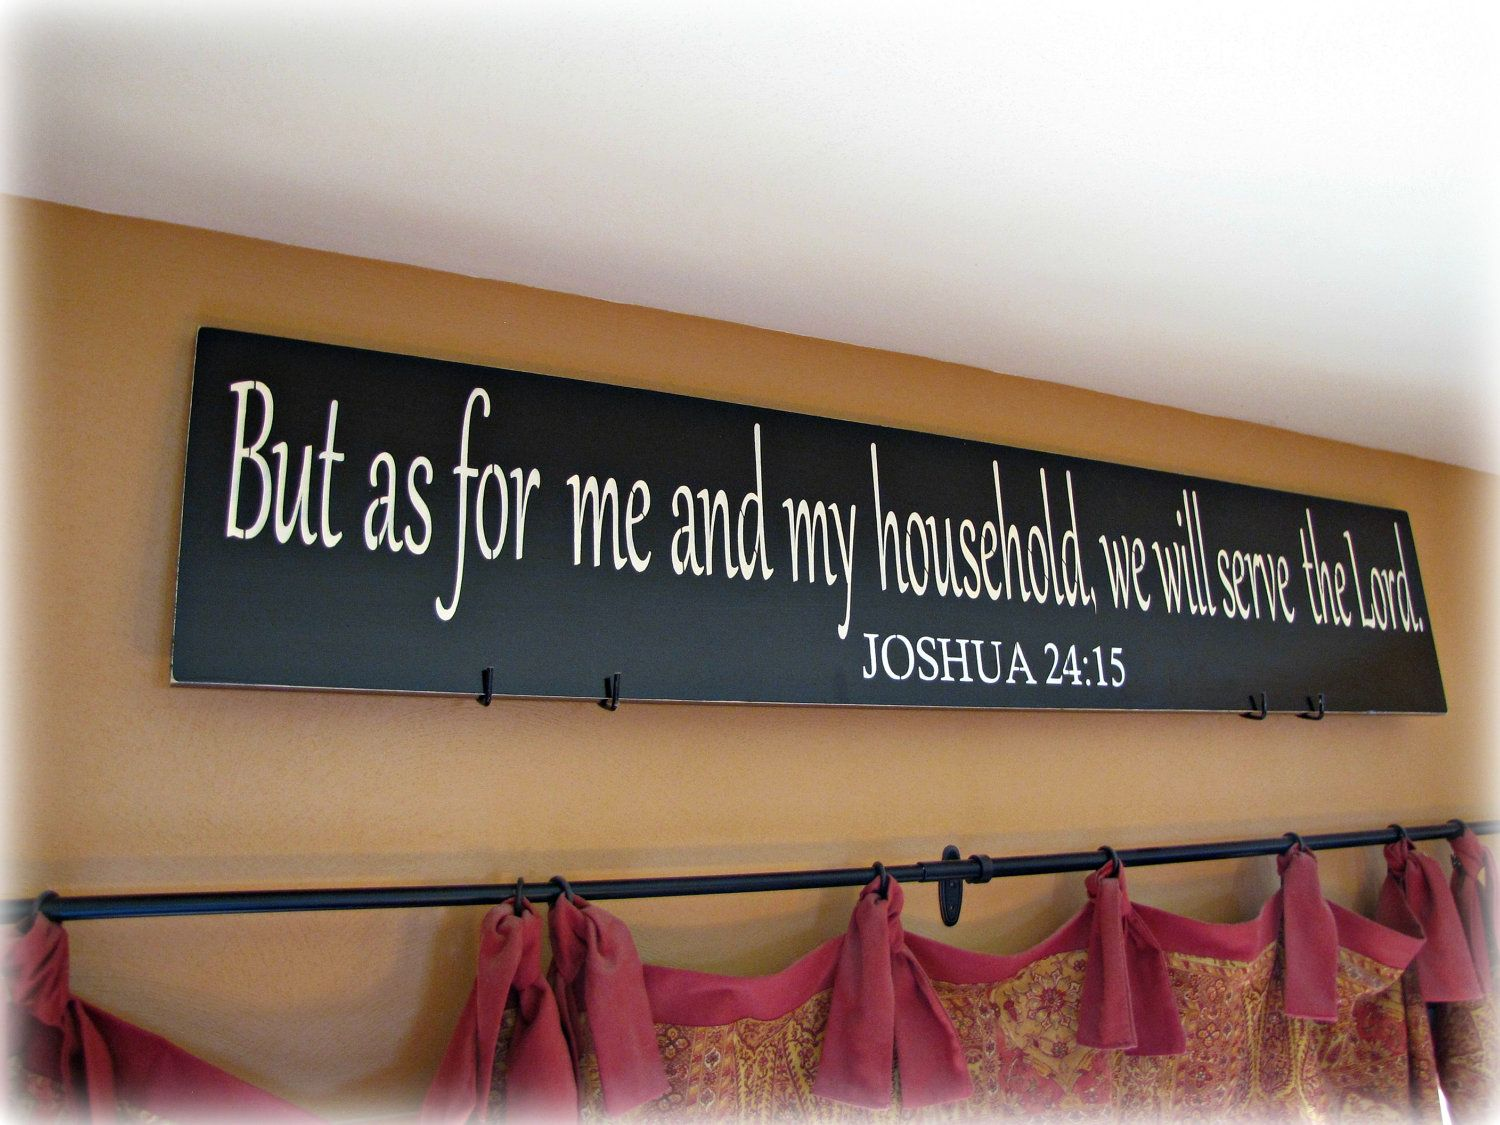 Christian Wall Decor as for me and my household- joshua christian wall decor | cellar